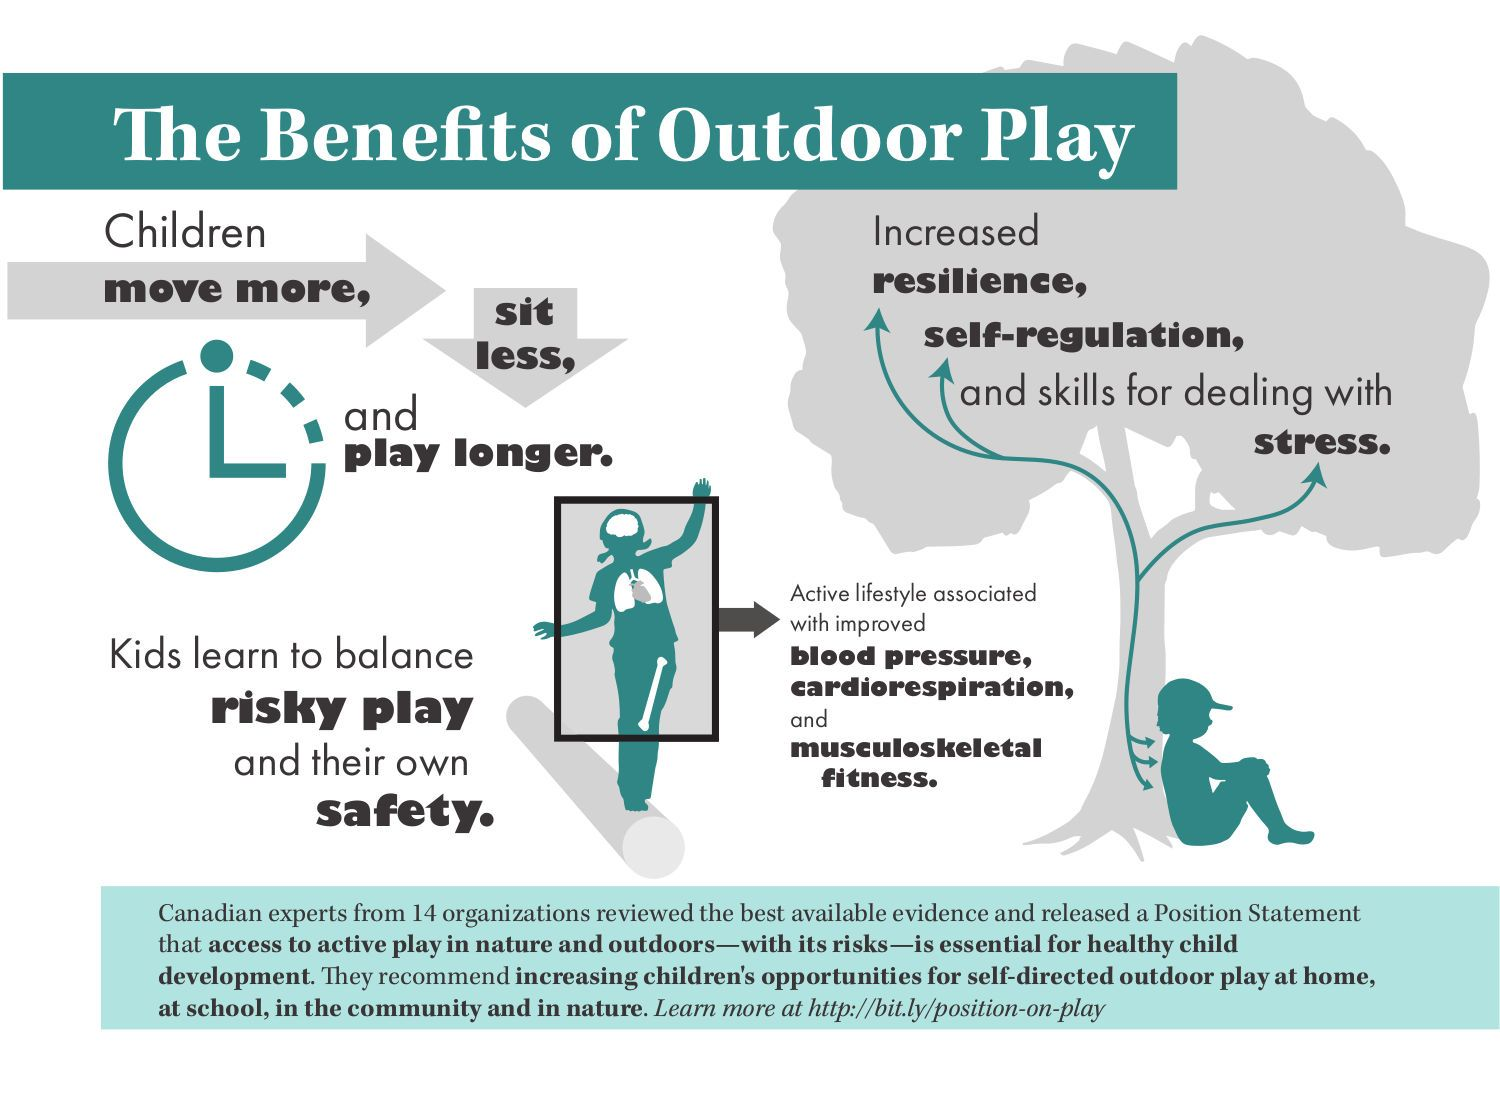 Benefits of Outdoor Play Infographic » Outdoor Play Canada